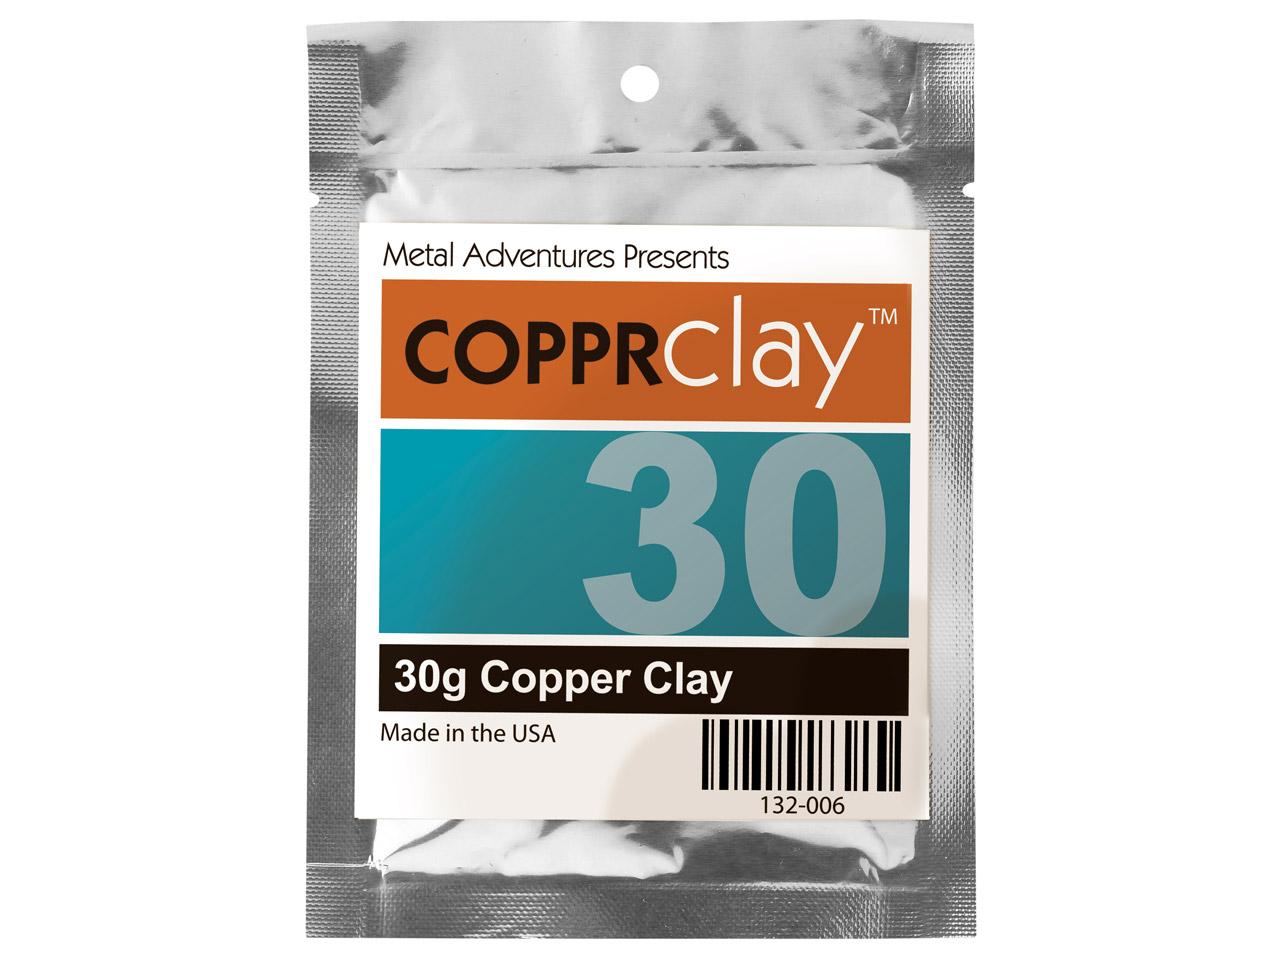 Coppr Clay 30g